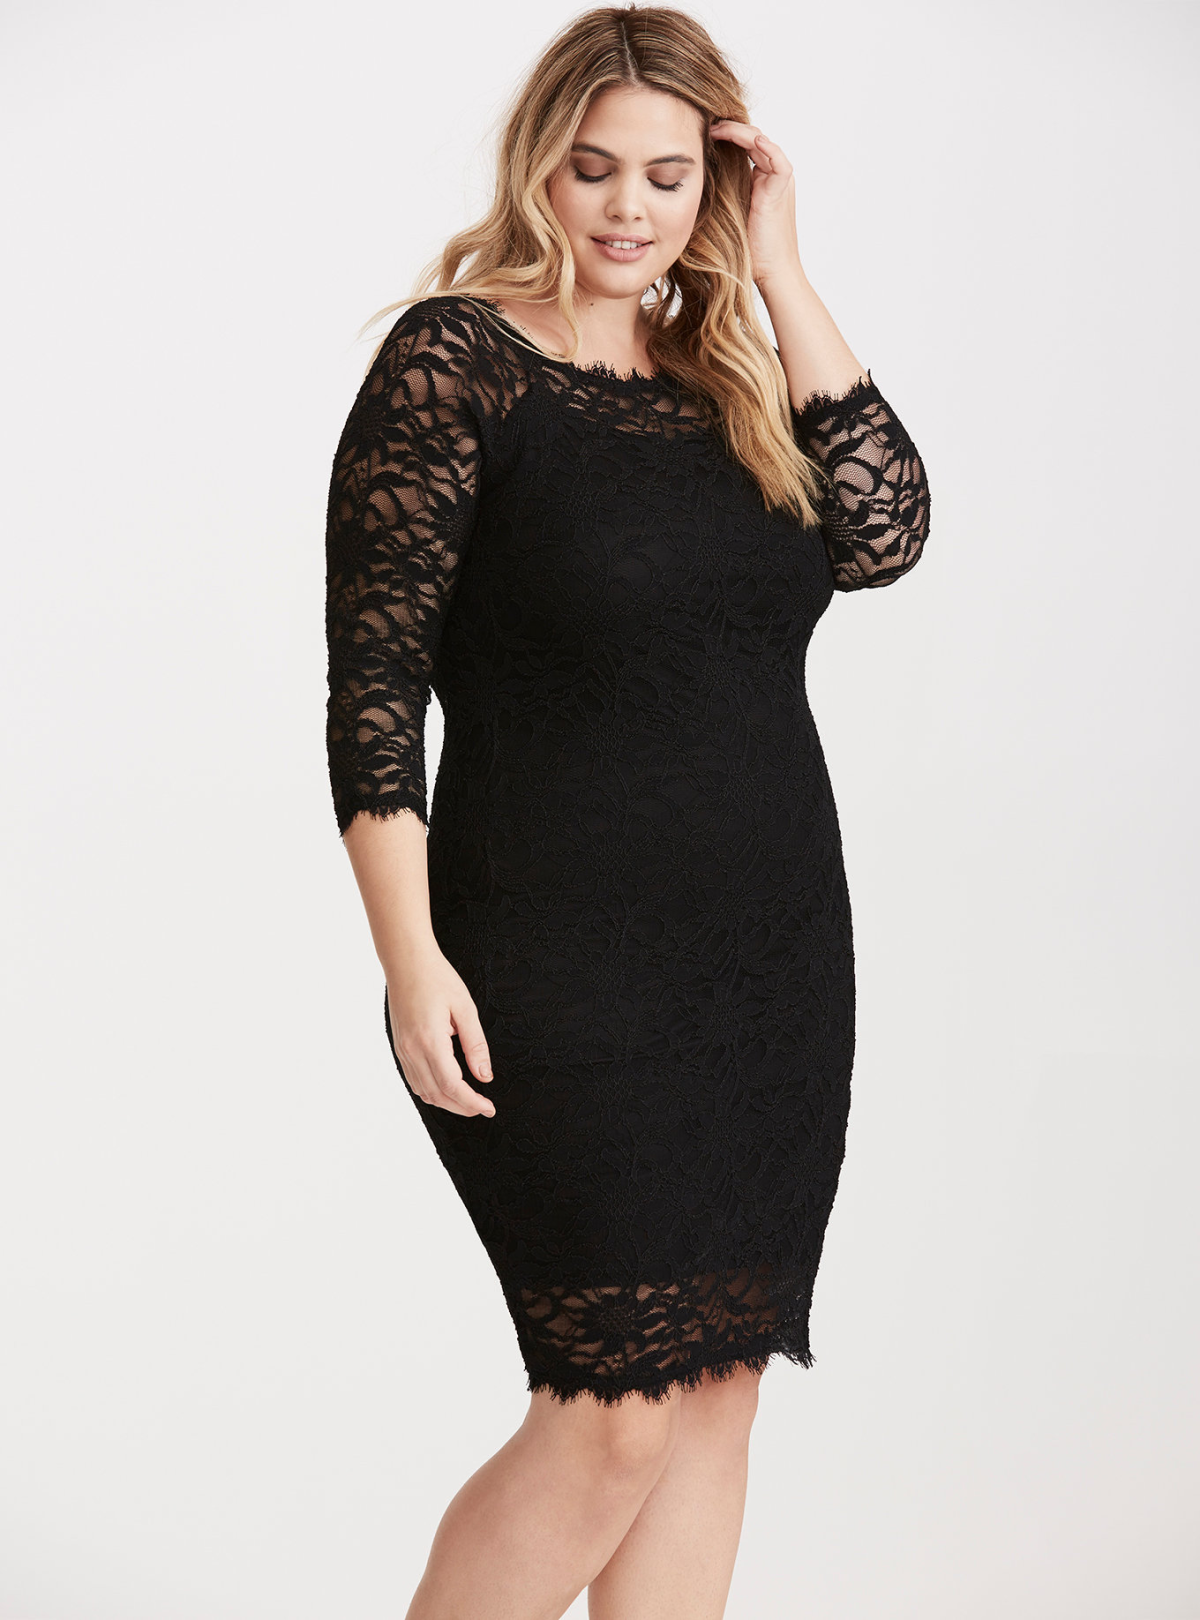 Plus  Size Winter Dresses